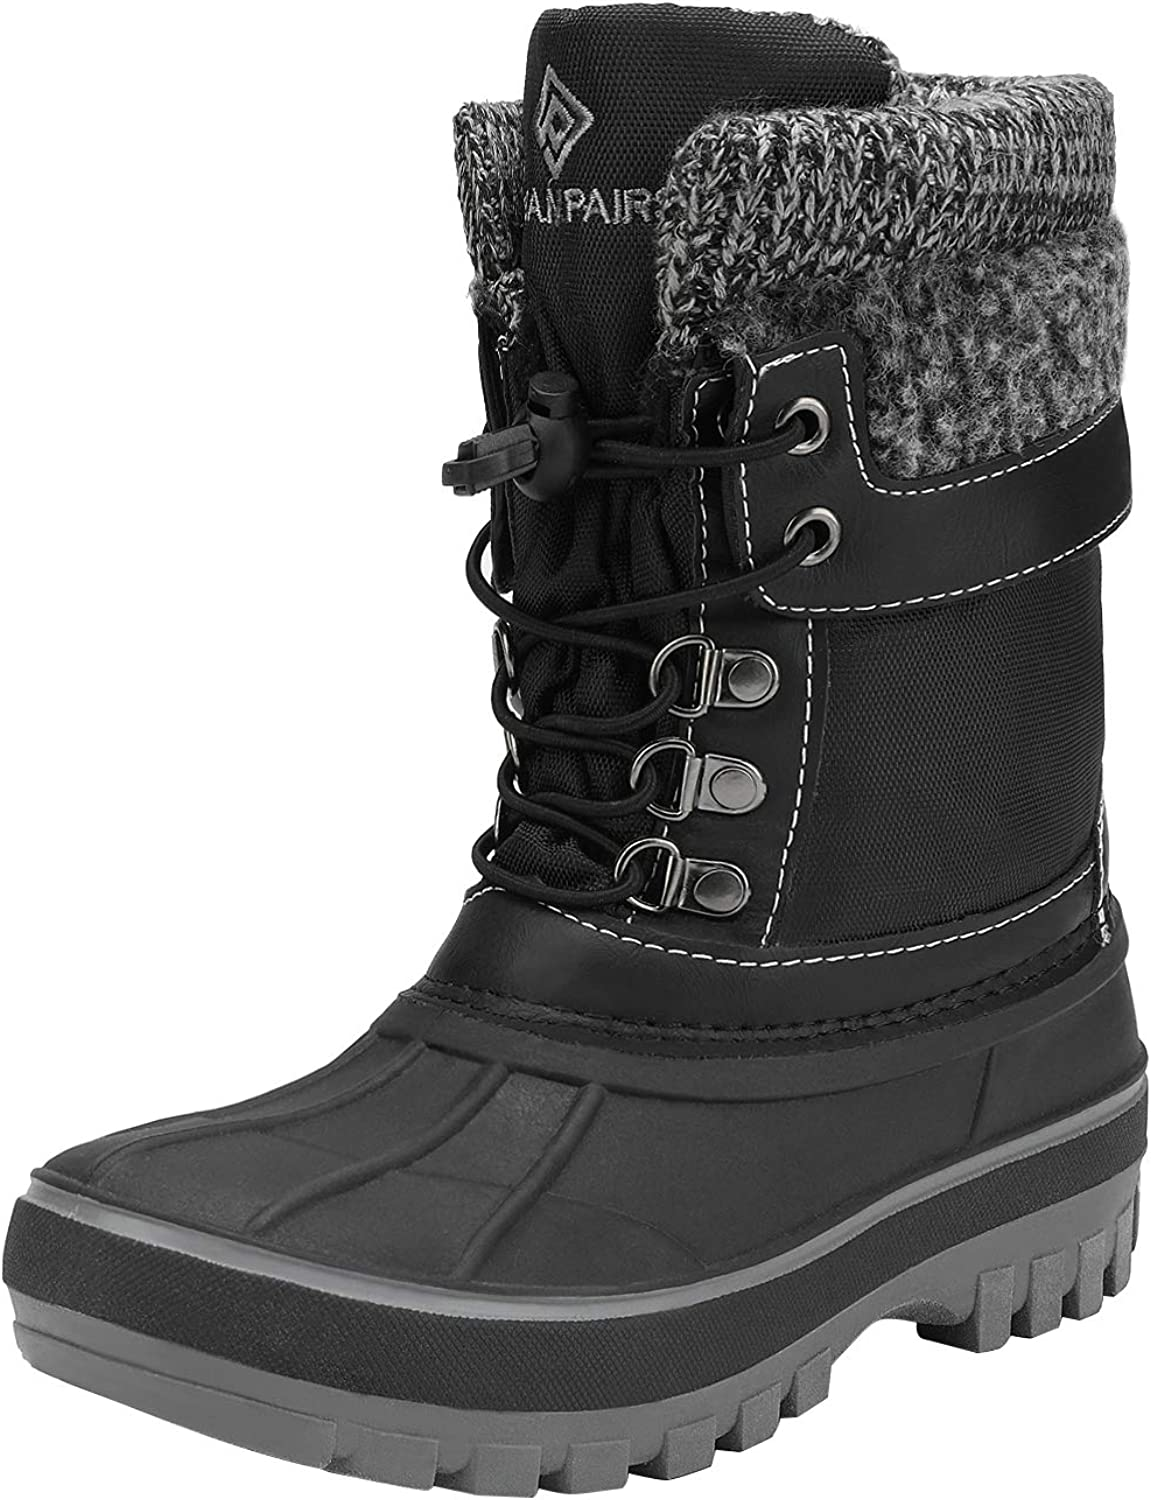 DREAM Complete Free Shipping PAIRS Boys Girls Insulated Snow Waterproof Max 72% OFF Boots Winter